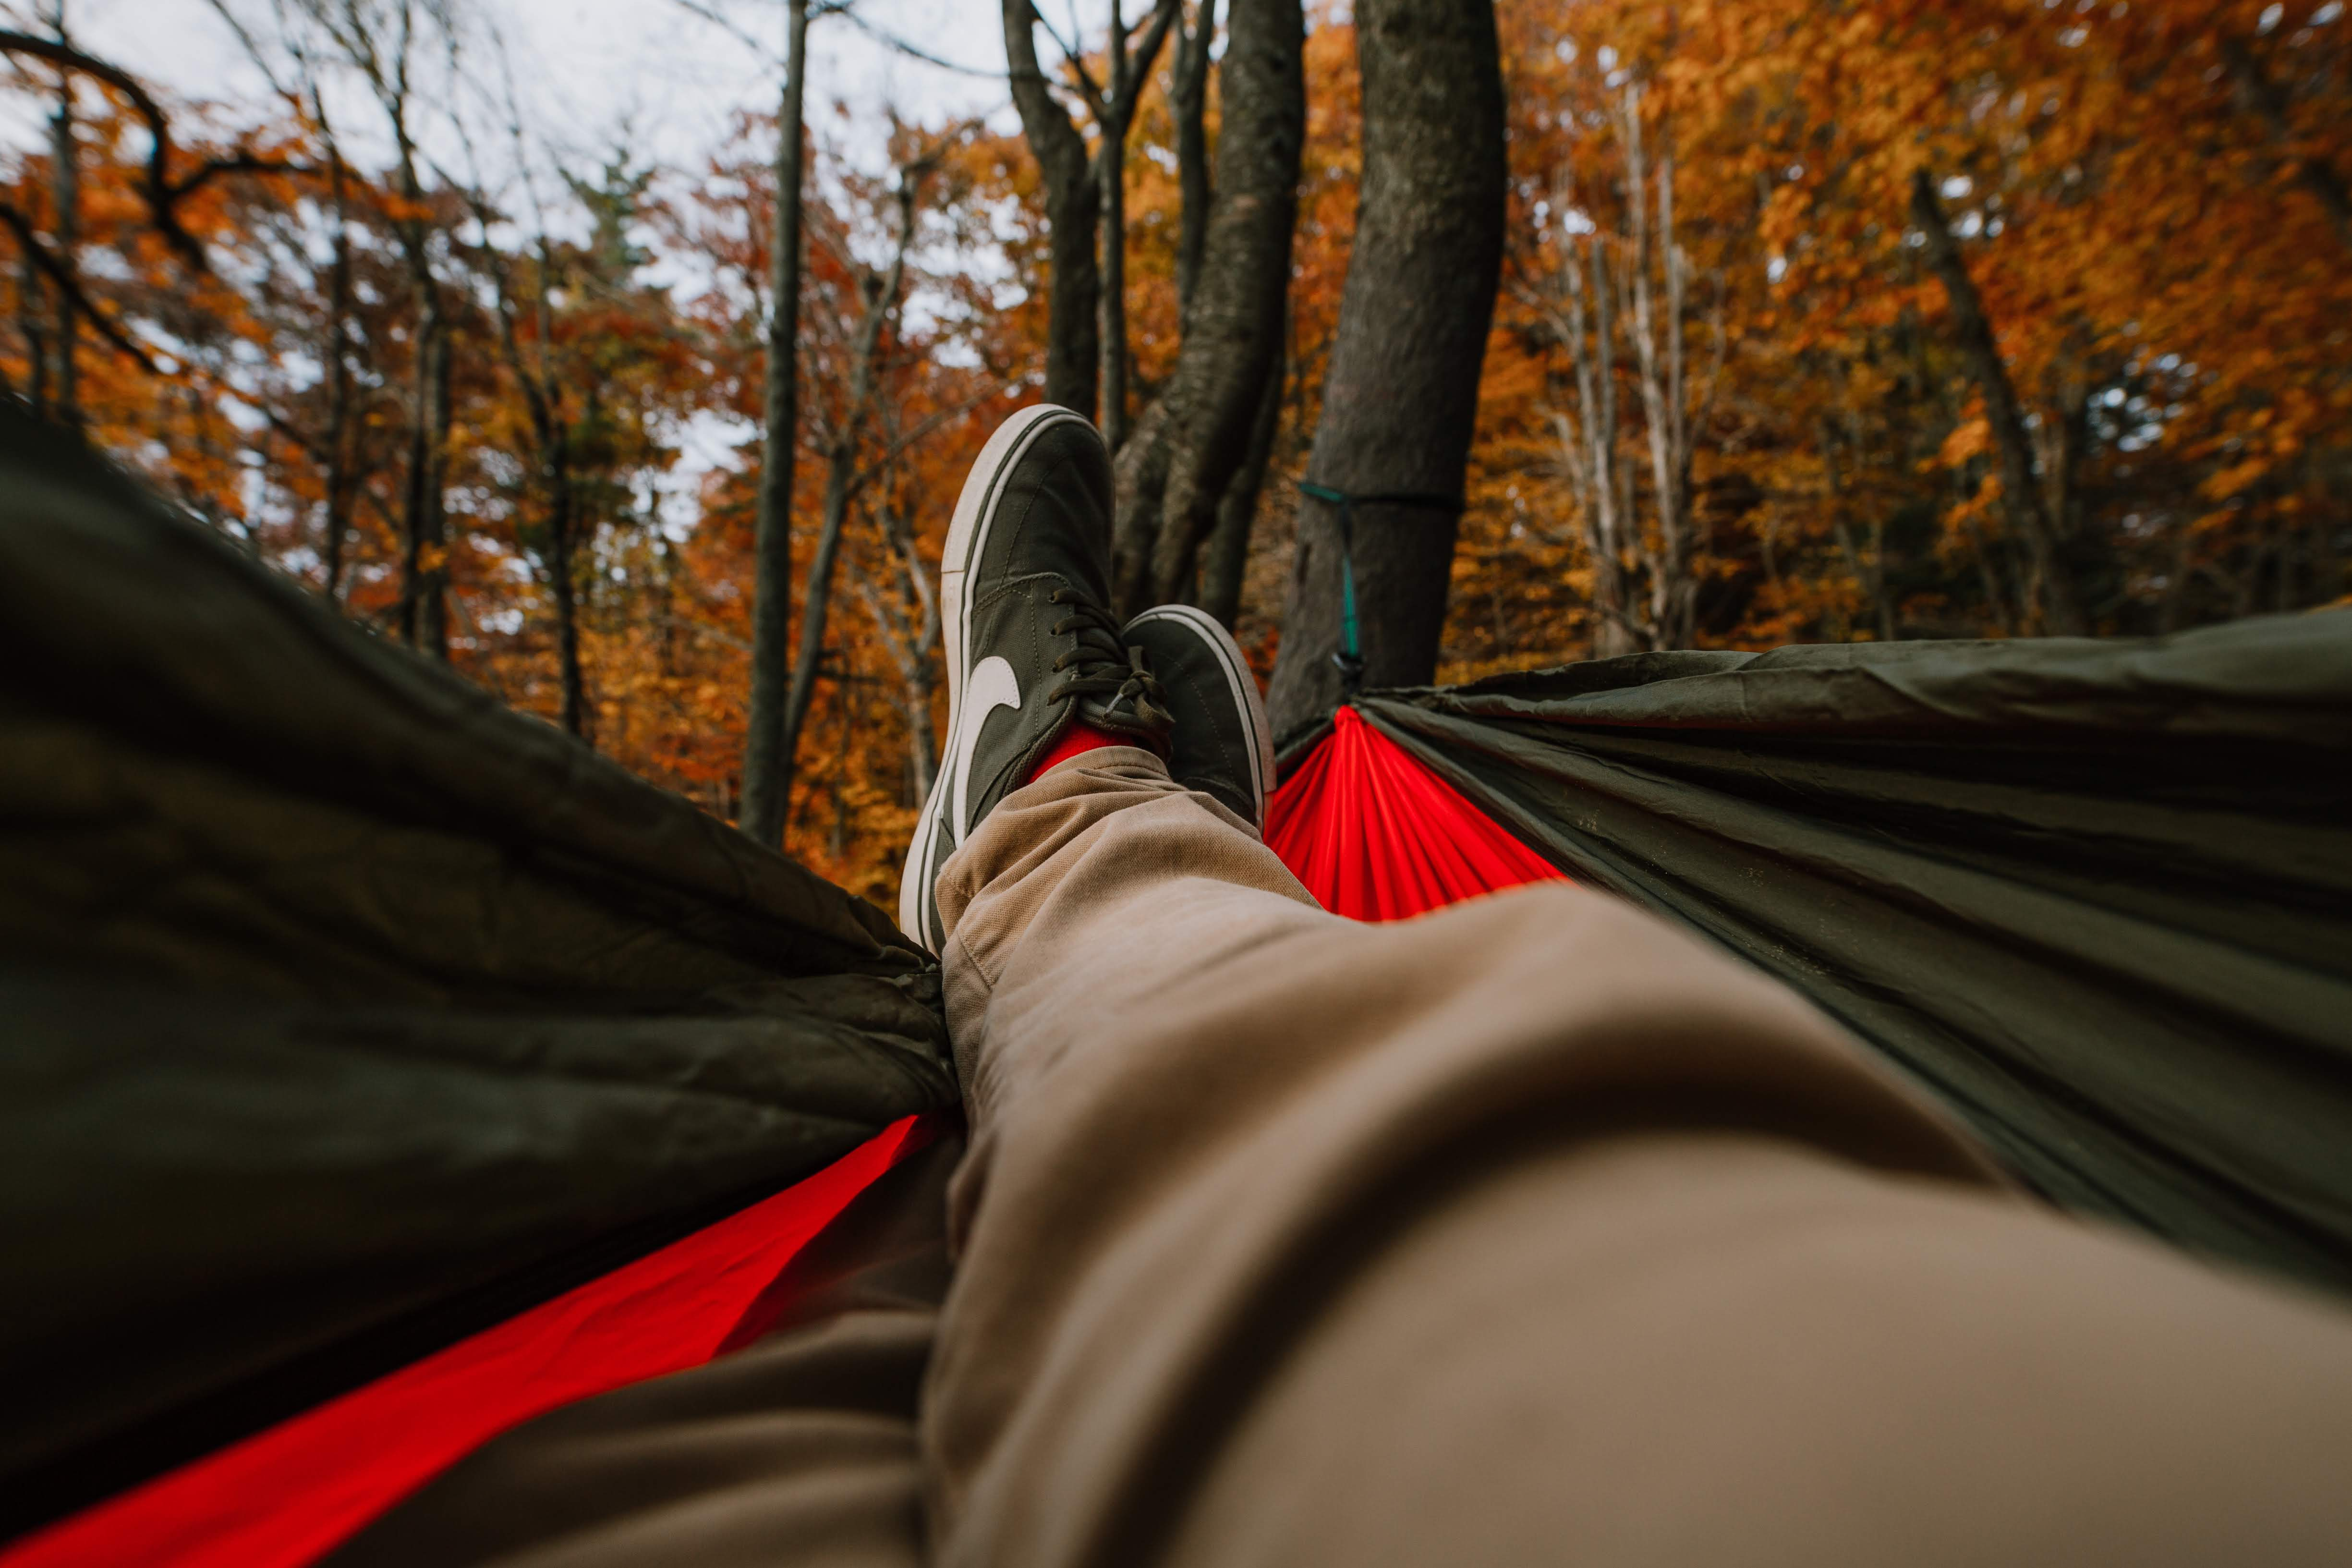 Photo of guy in hammock